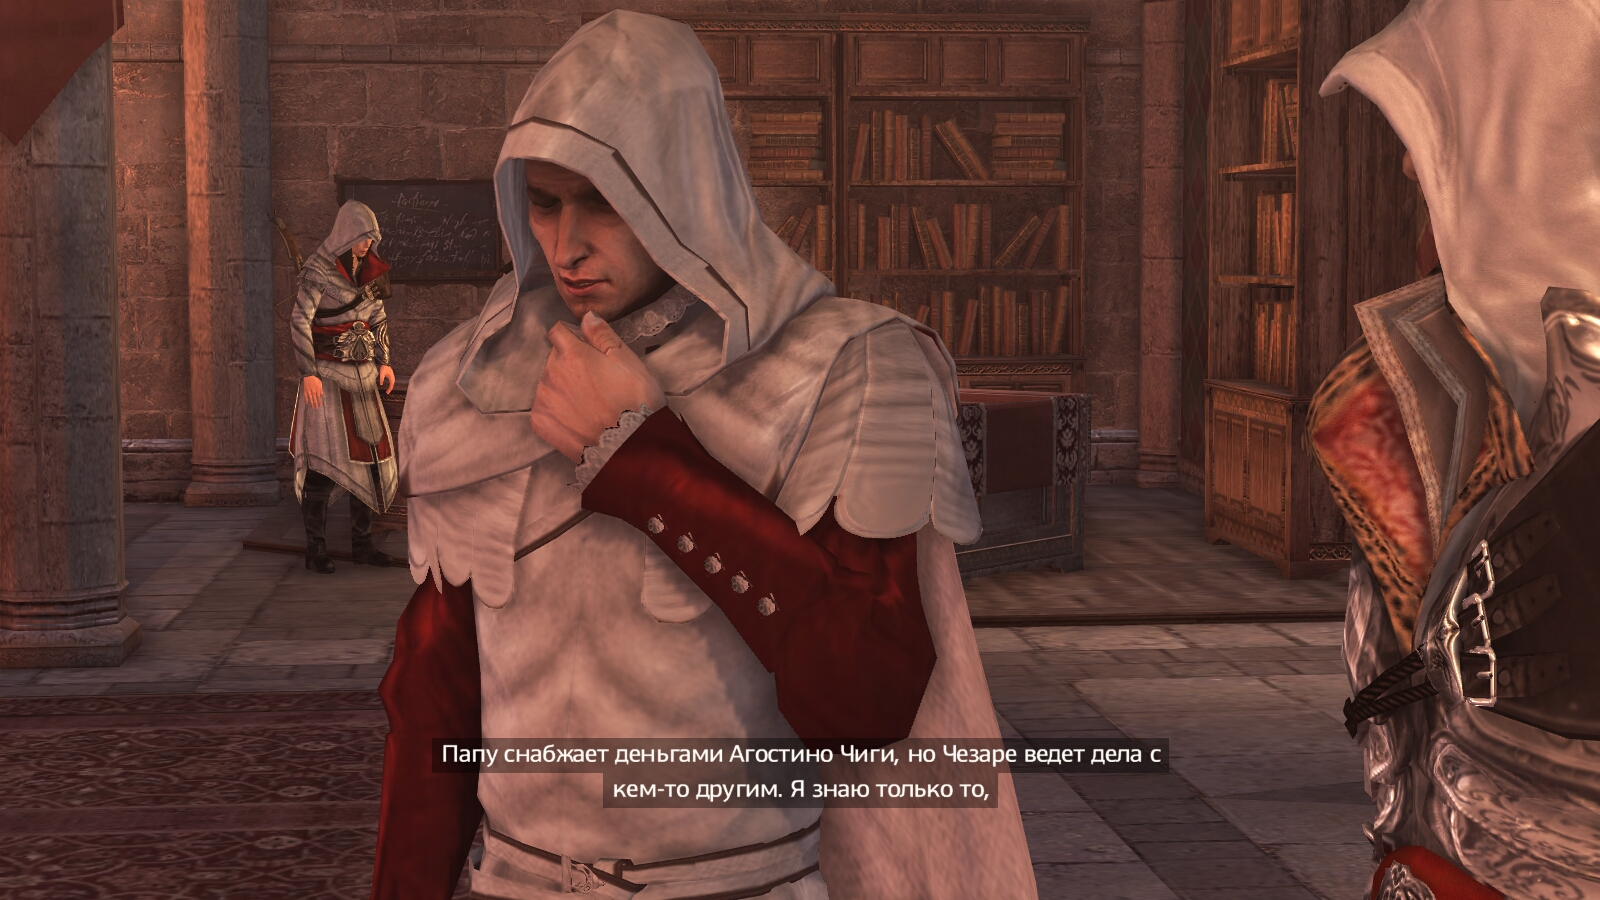 Assassin creed brotherhood nude skin mod hentai image